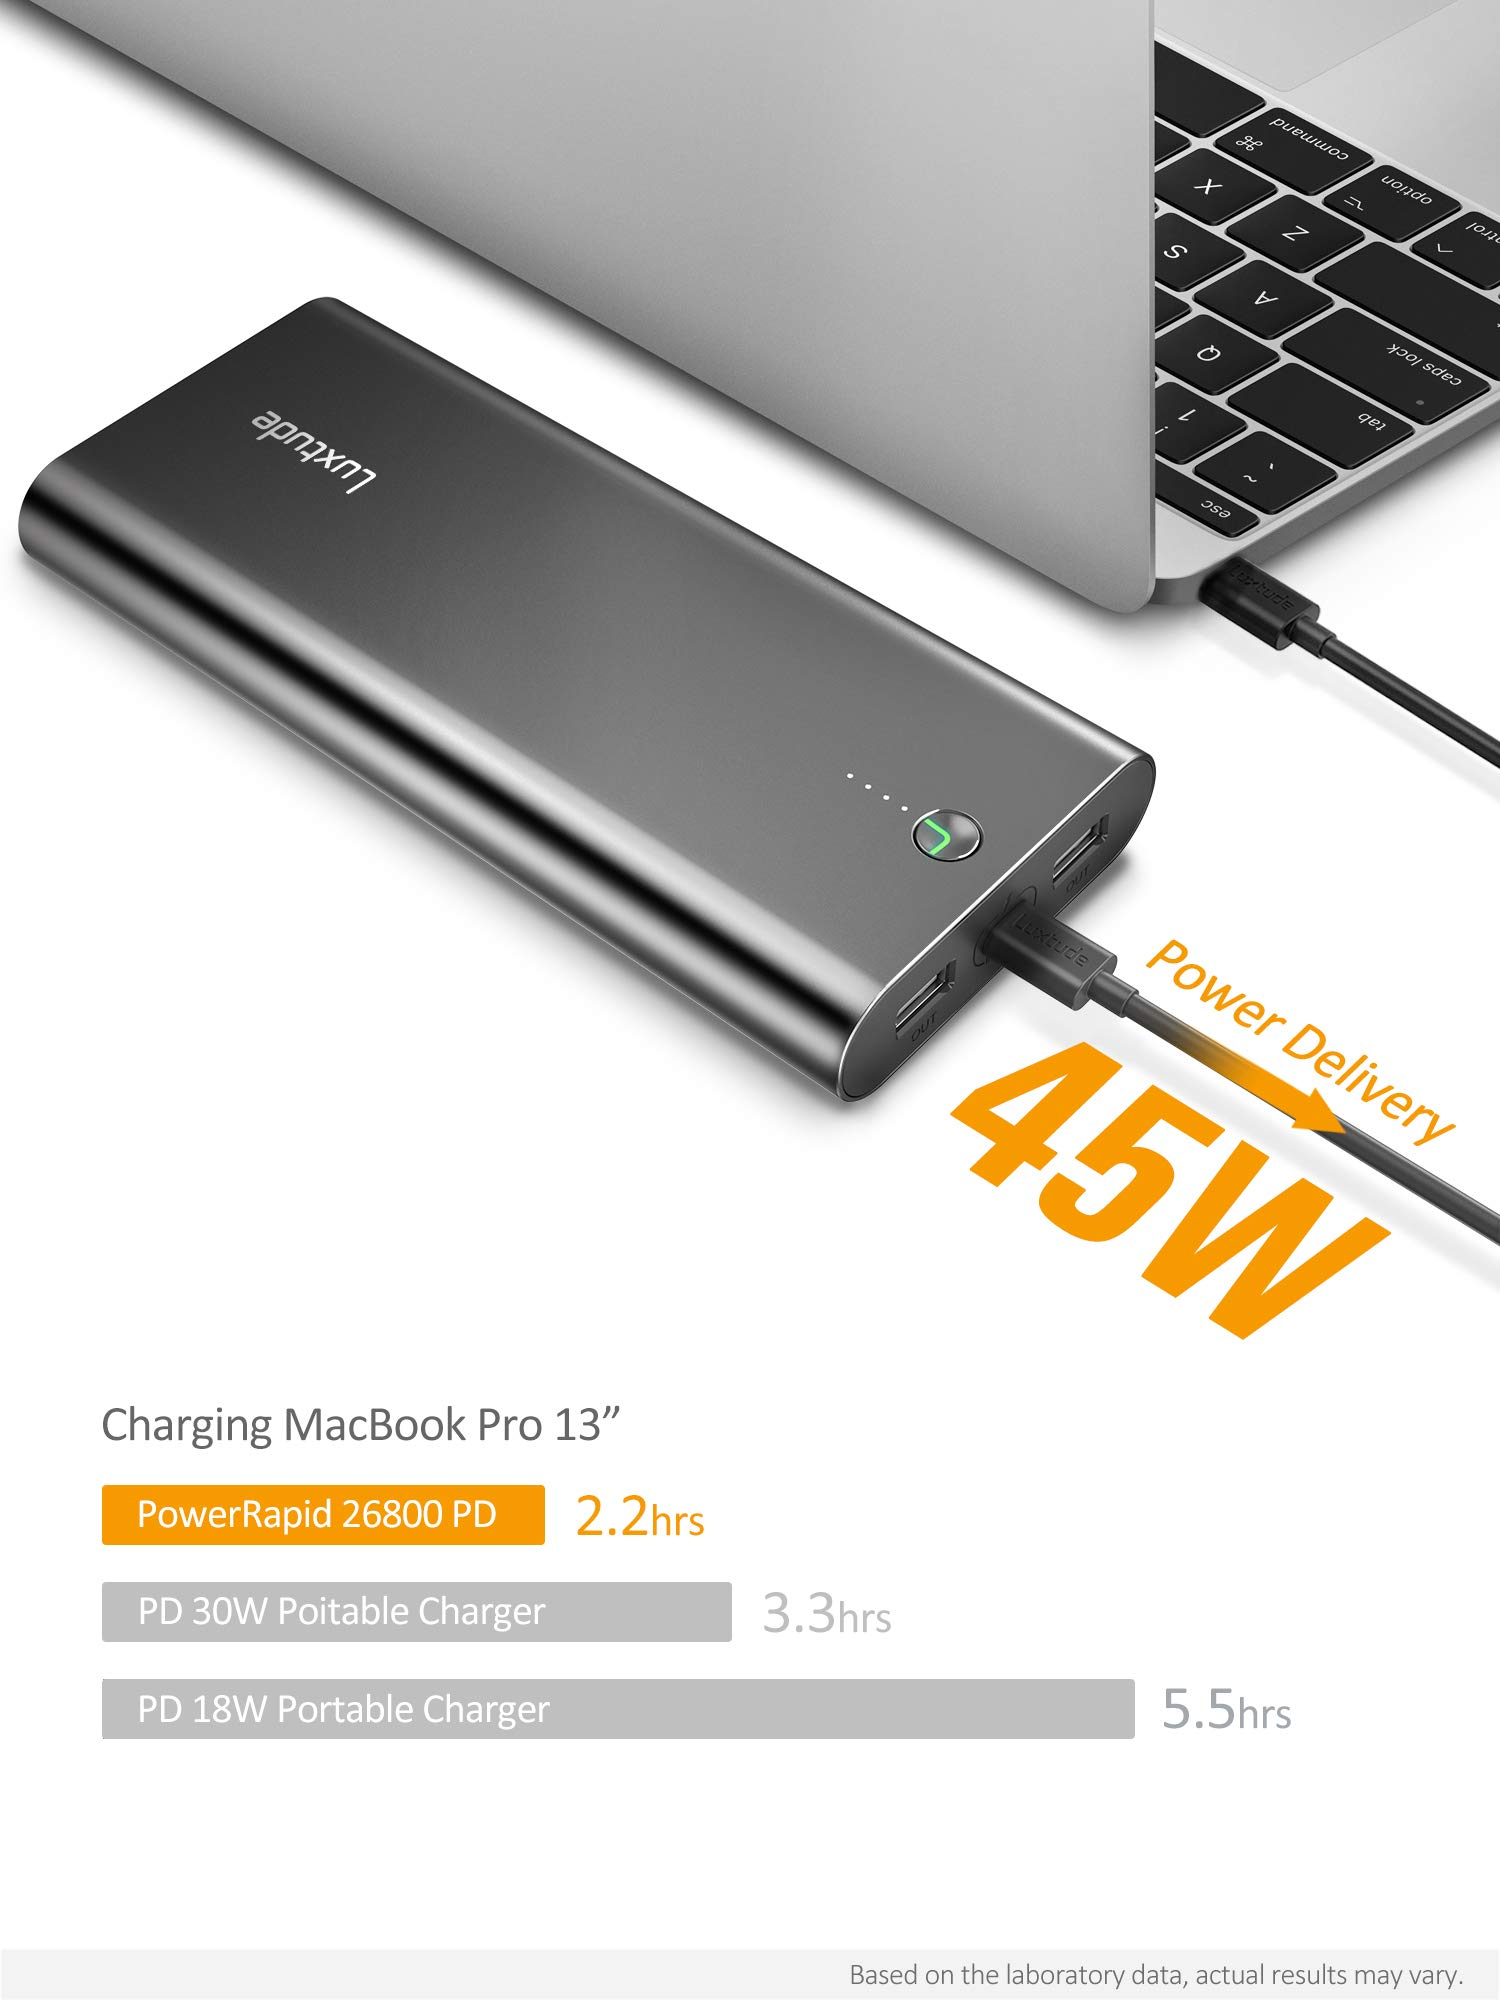 Luxtude PowerRapid 26800 PD, 45W USB C PD Portable Laptop Charger & 60W Power Delivery Wall Charger Bundle, Recharged in 3 Hours USB C Power Bank for MacBook Pro, Notebook, Galaxy S10, Type C Laptops by Luxtude (Image #2)